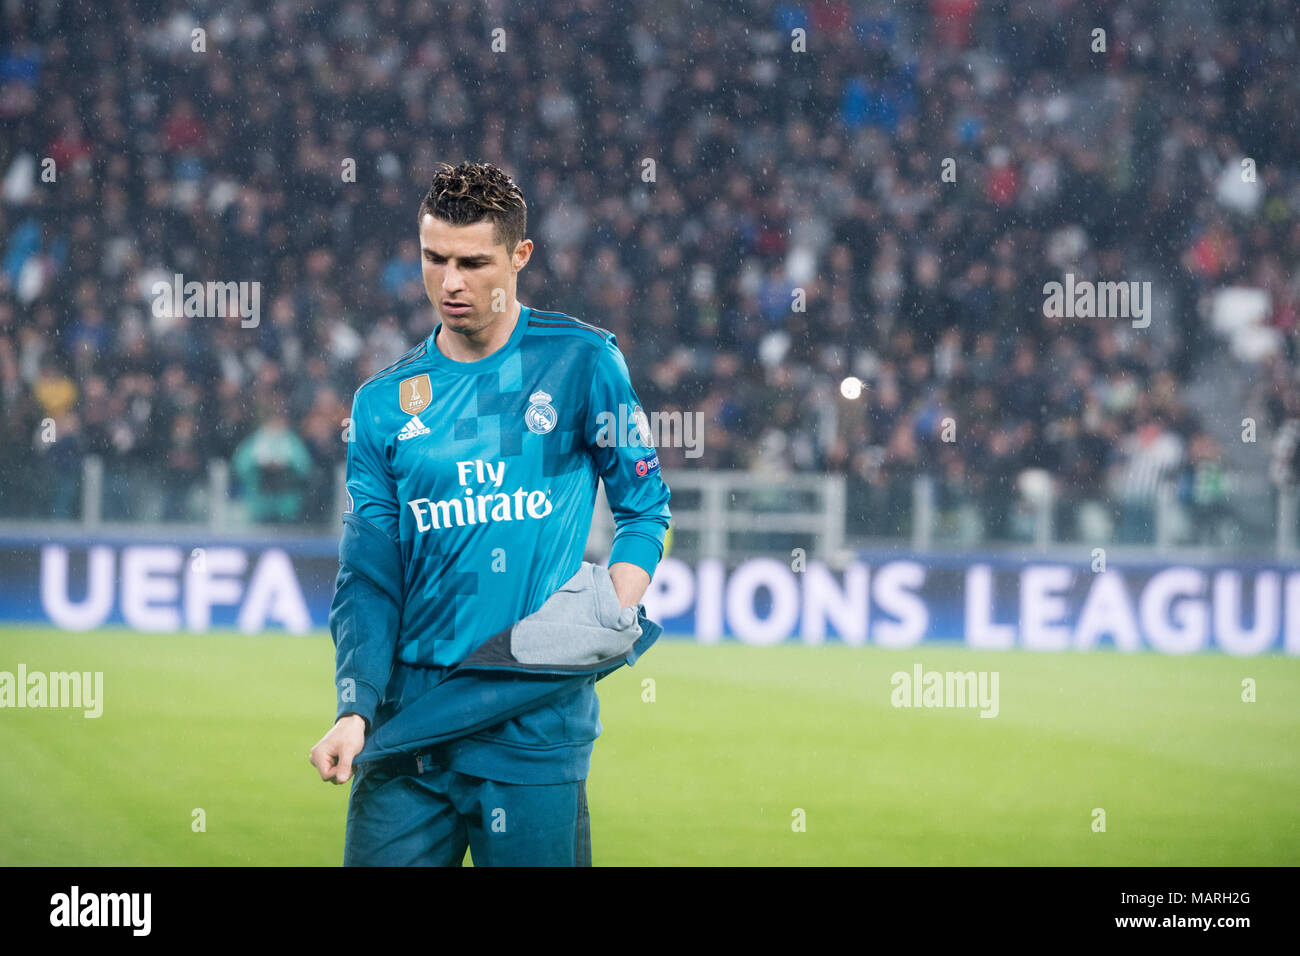 Cristiano Ronaldo During The Champions League Match Juventus Fc Vs Real Madrid Real Madrid Won 3 0 At Allianz Stadium In Turin Italy 3rd April 2018 Stock Photo Alamy